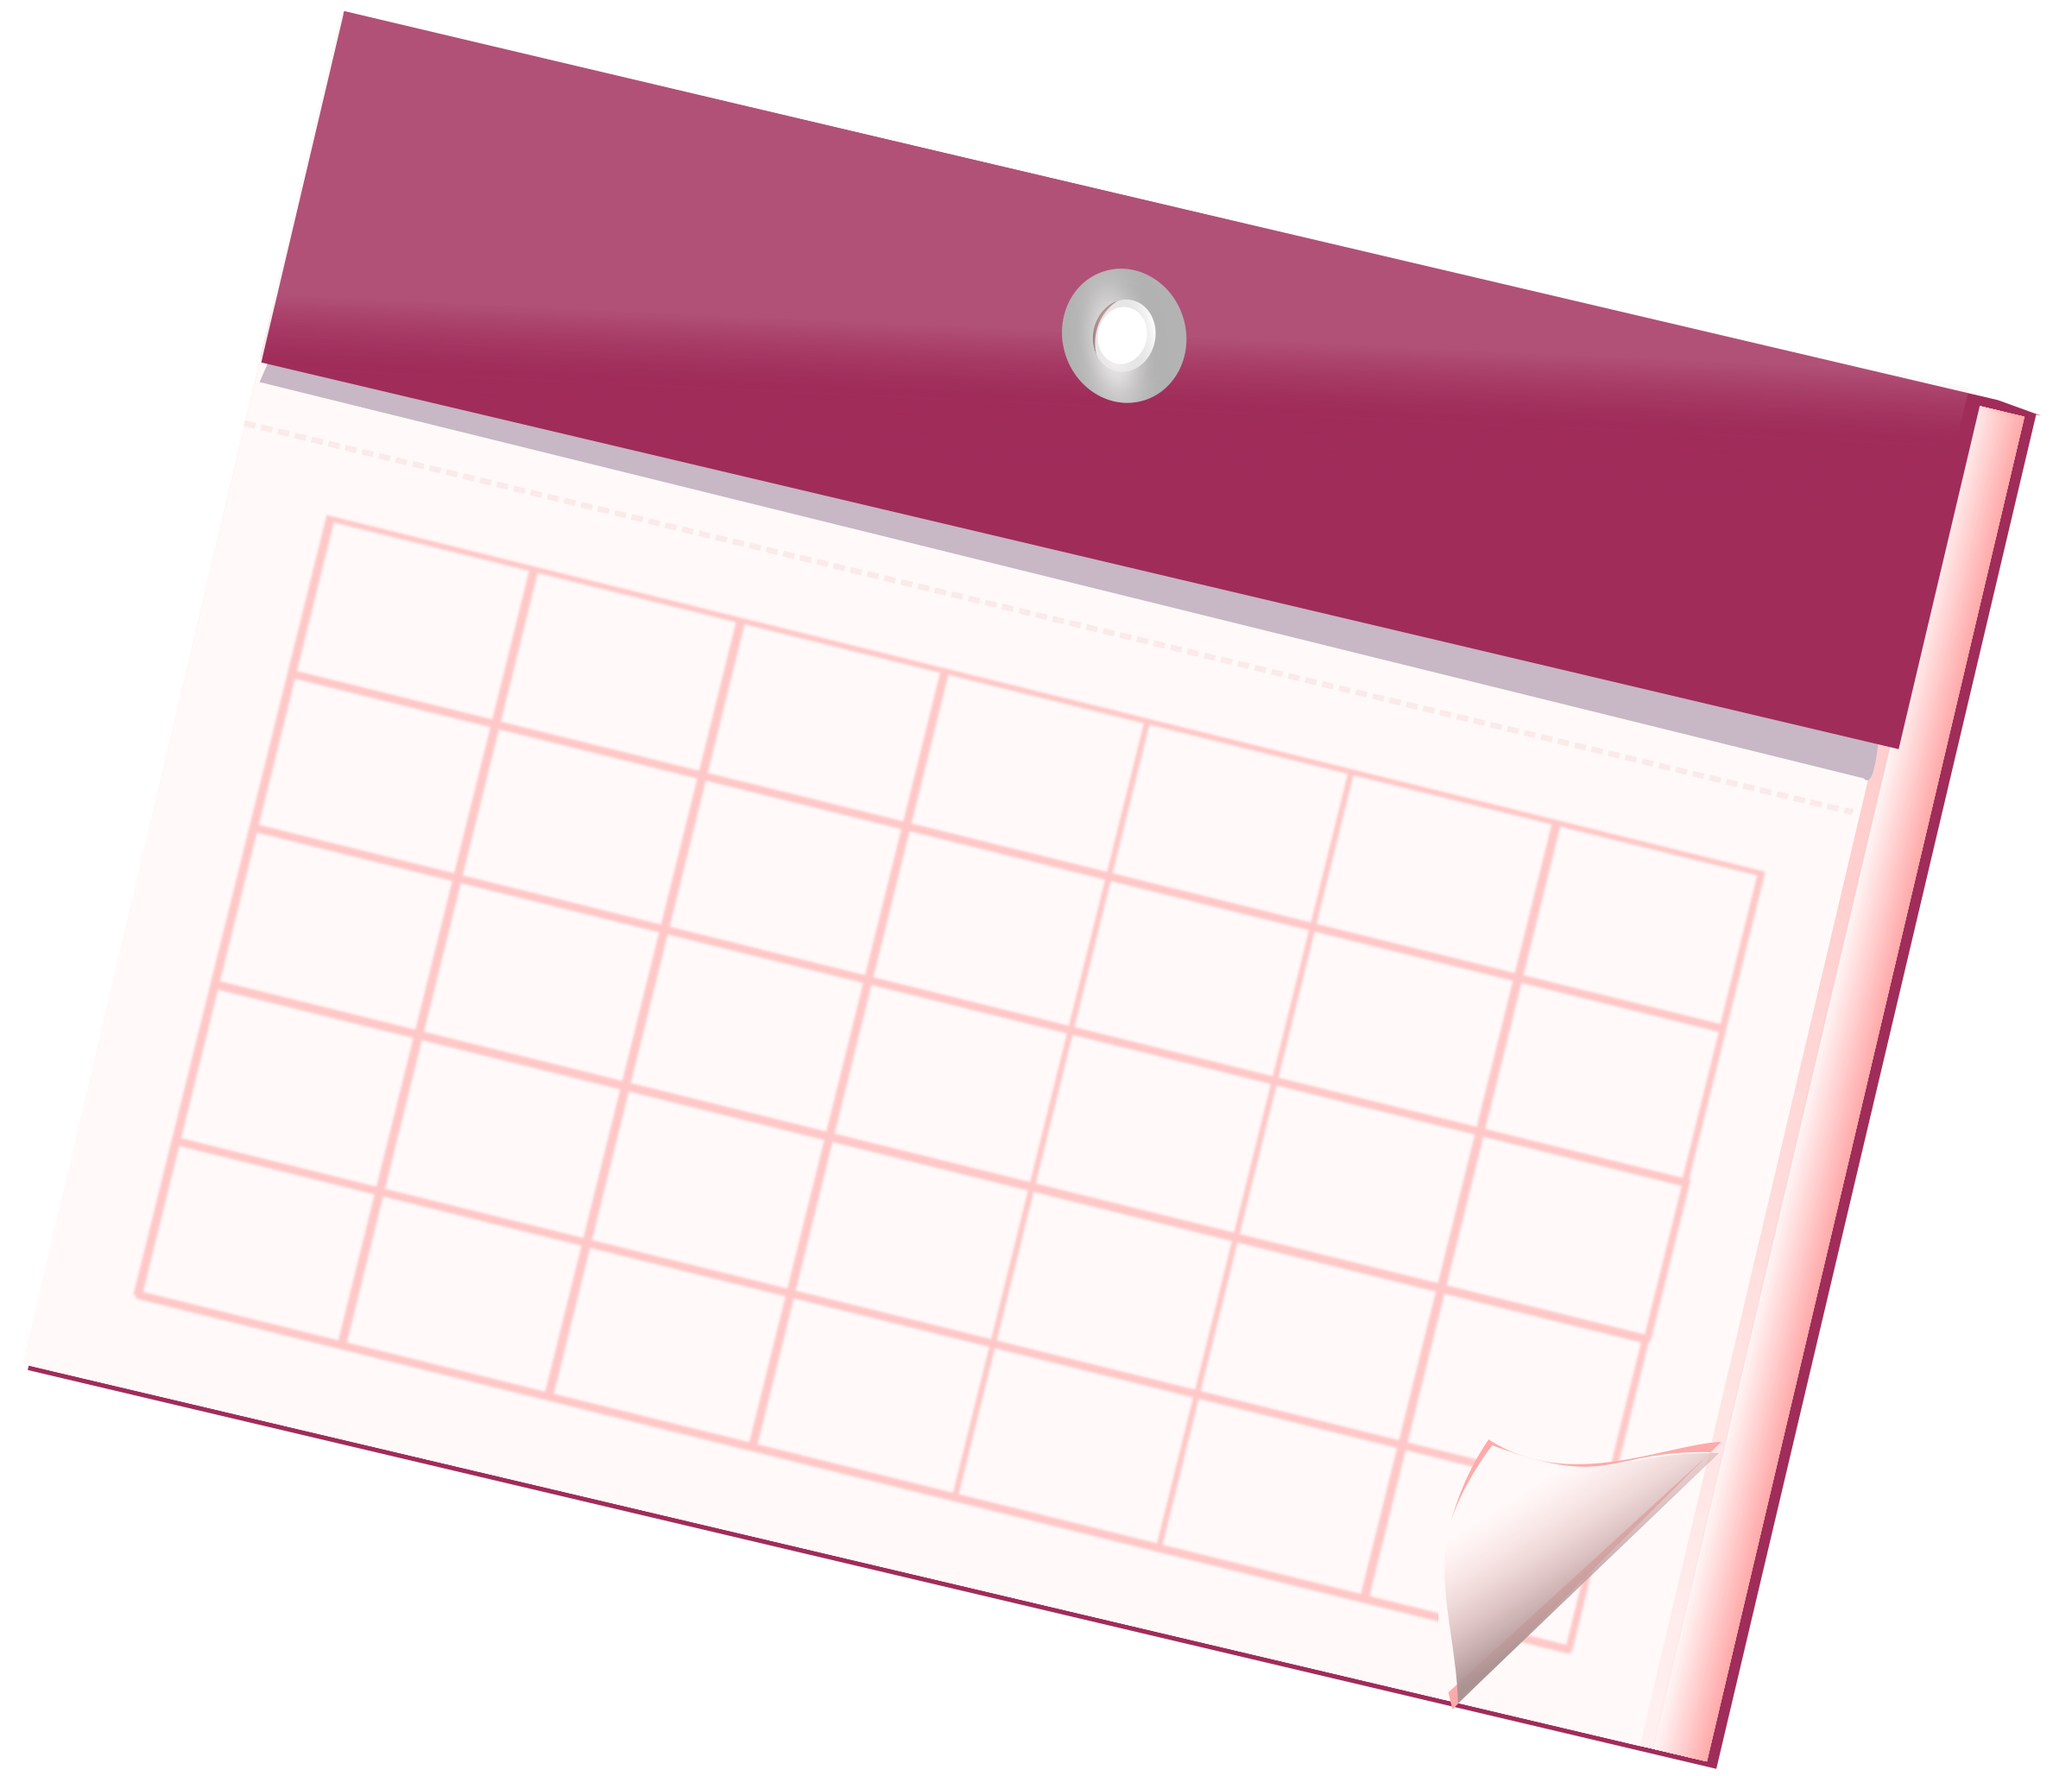 Empty Calendar Sheet by Nizips